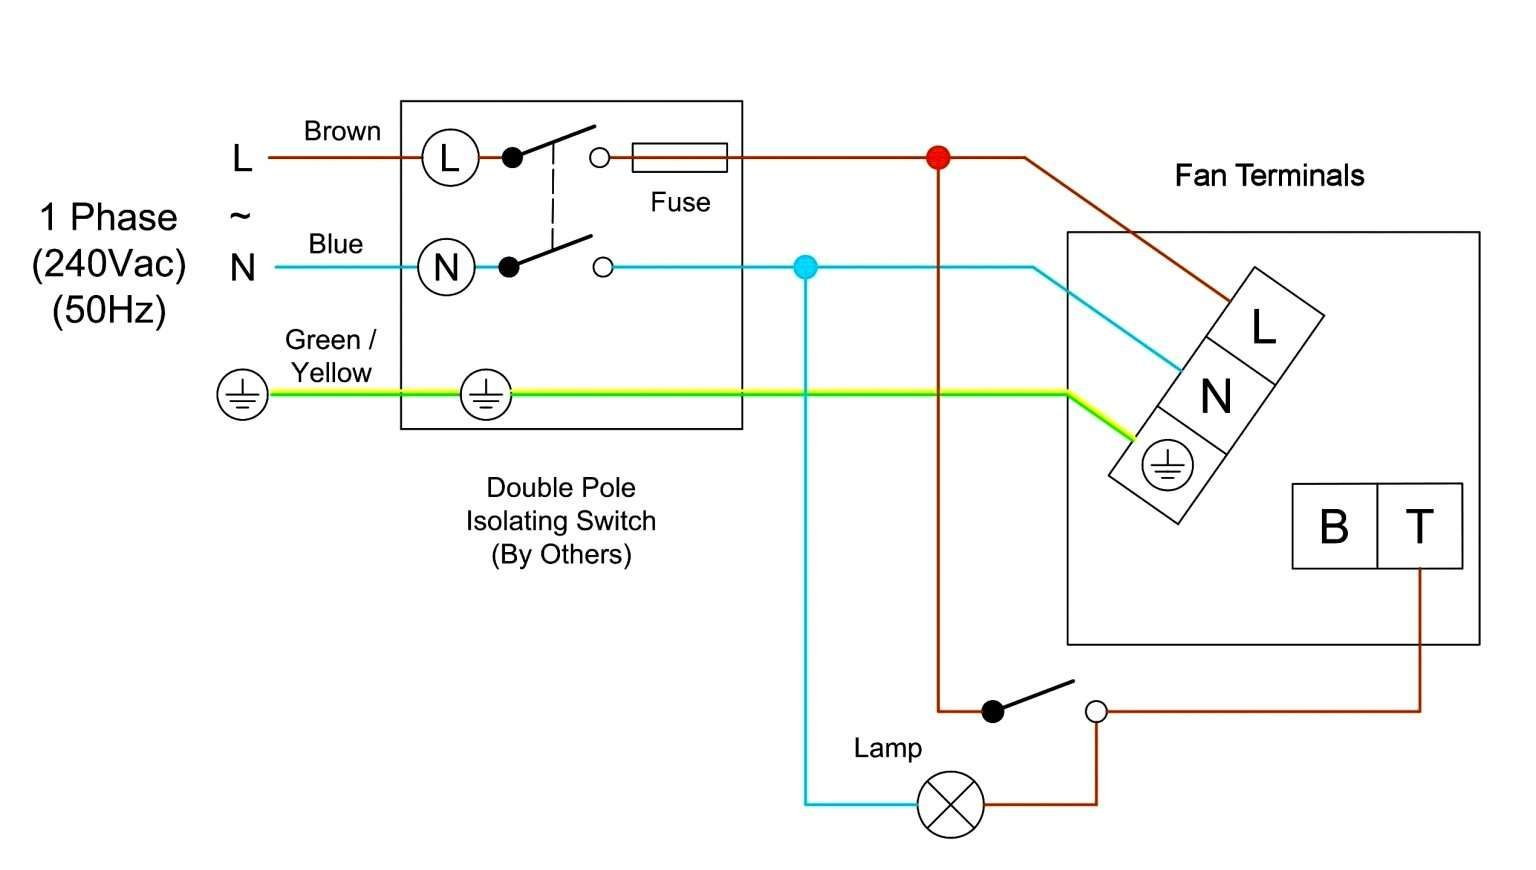 Extractor Fan Bathroom Wiring Diagram from veryshortpier.com